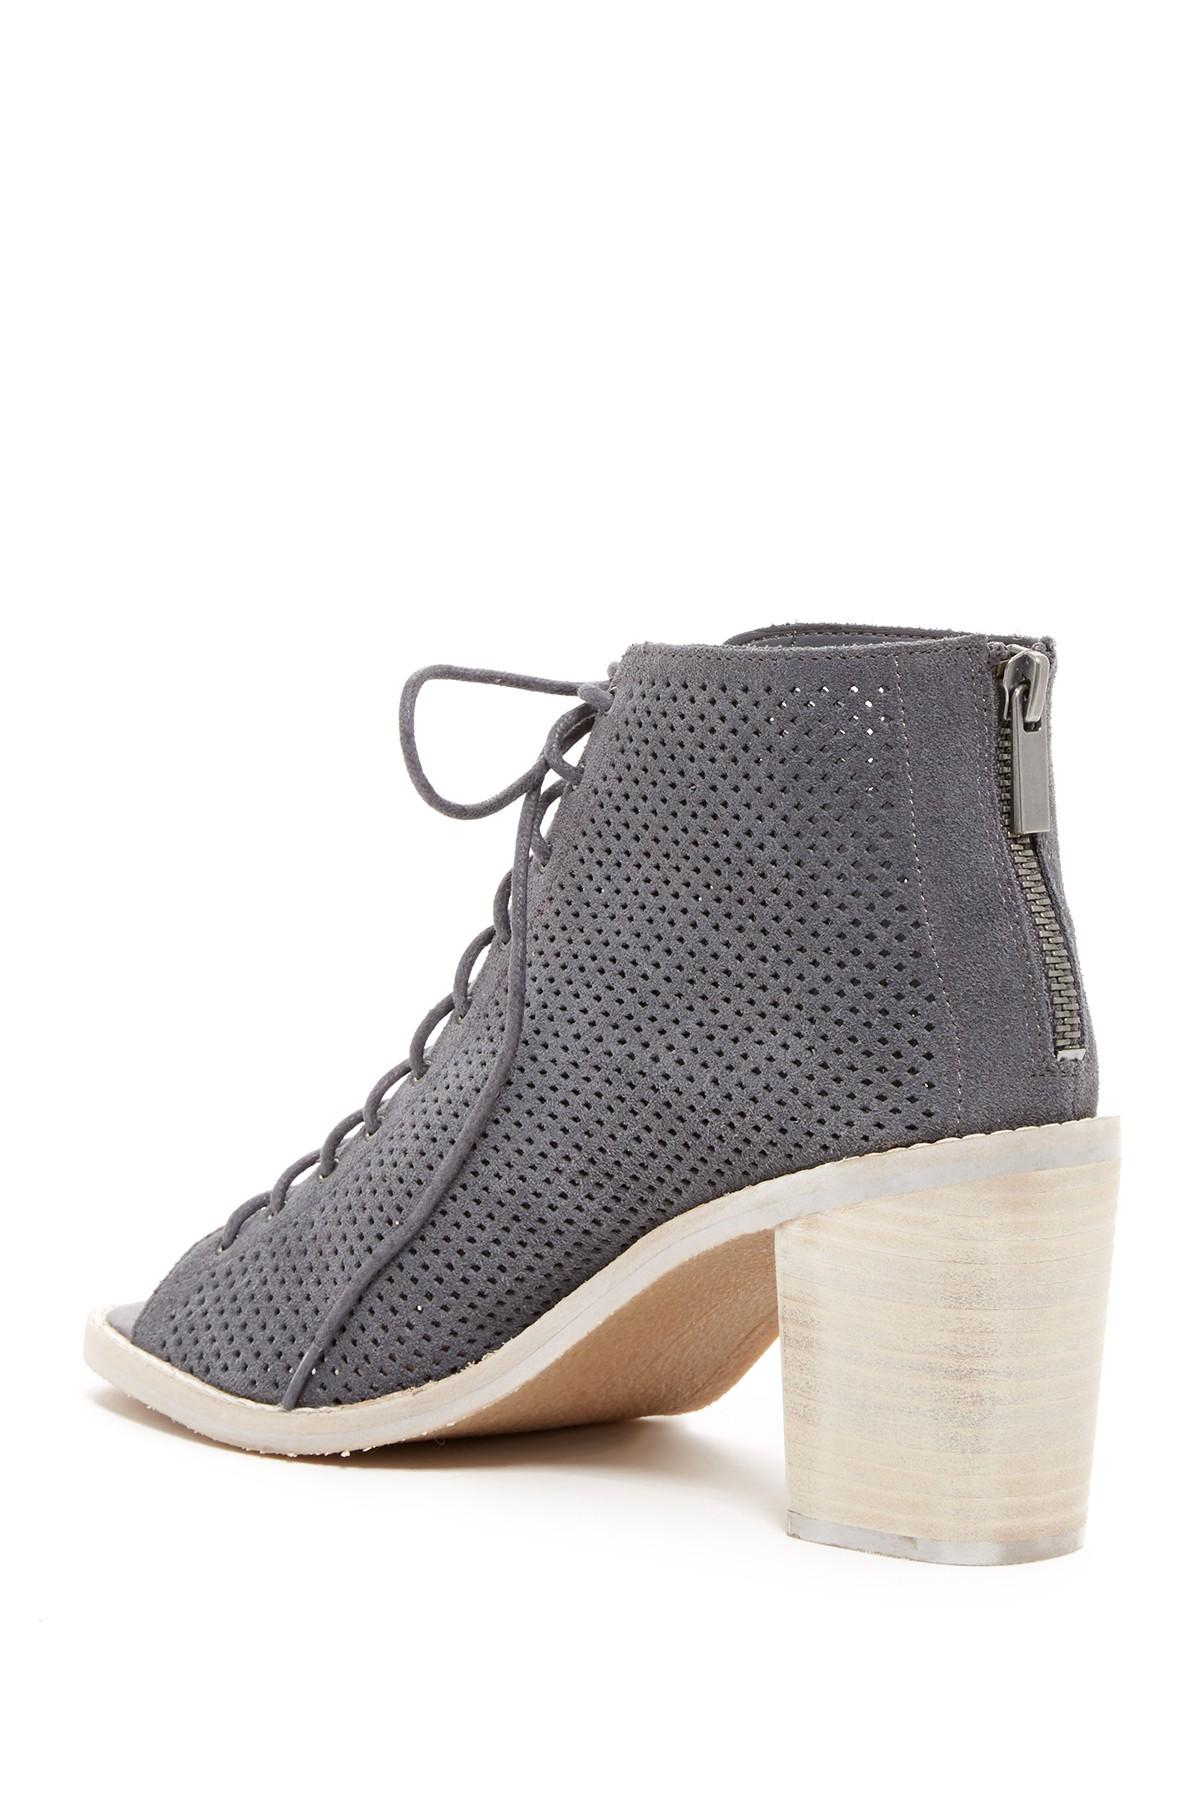 452e745e92e Dolce Vita Morie Perforated Heeled Sandal in Gray - Lyst